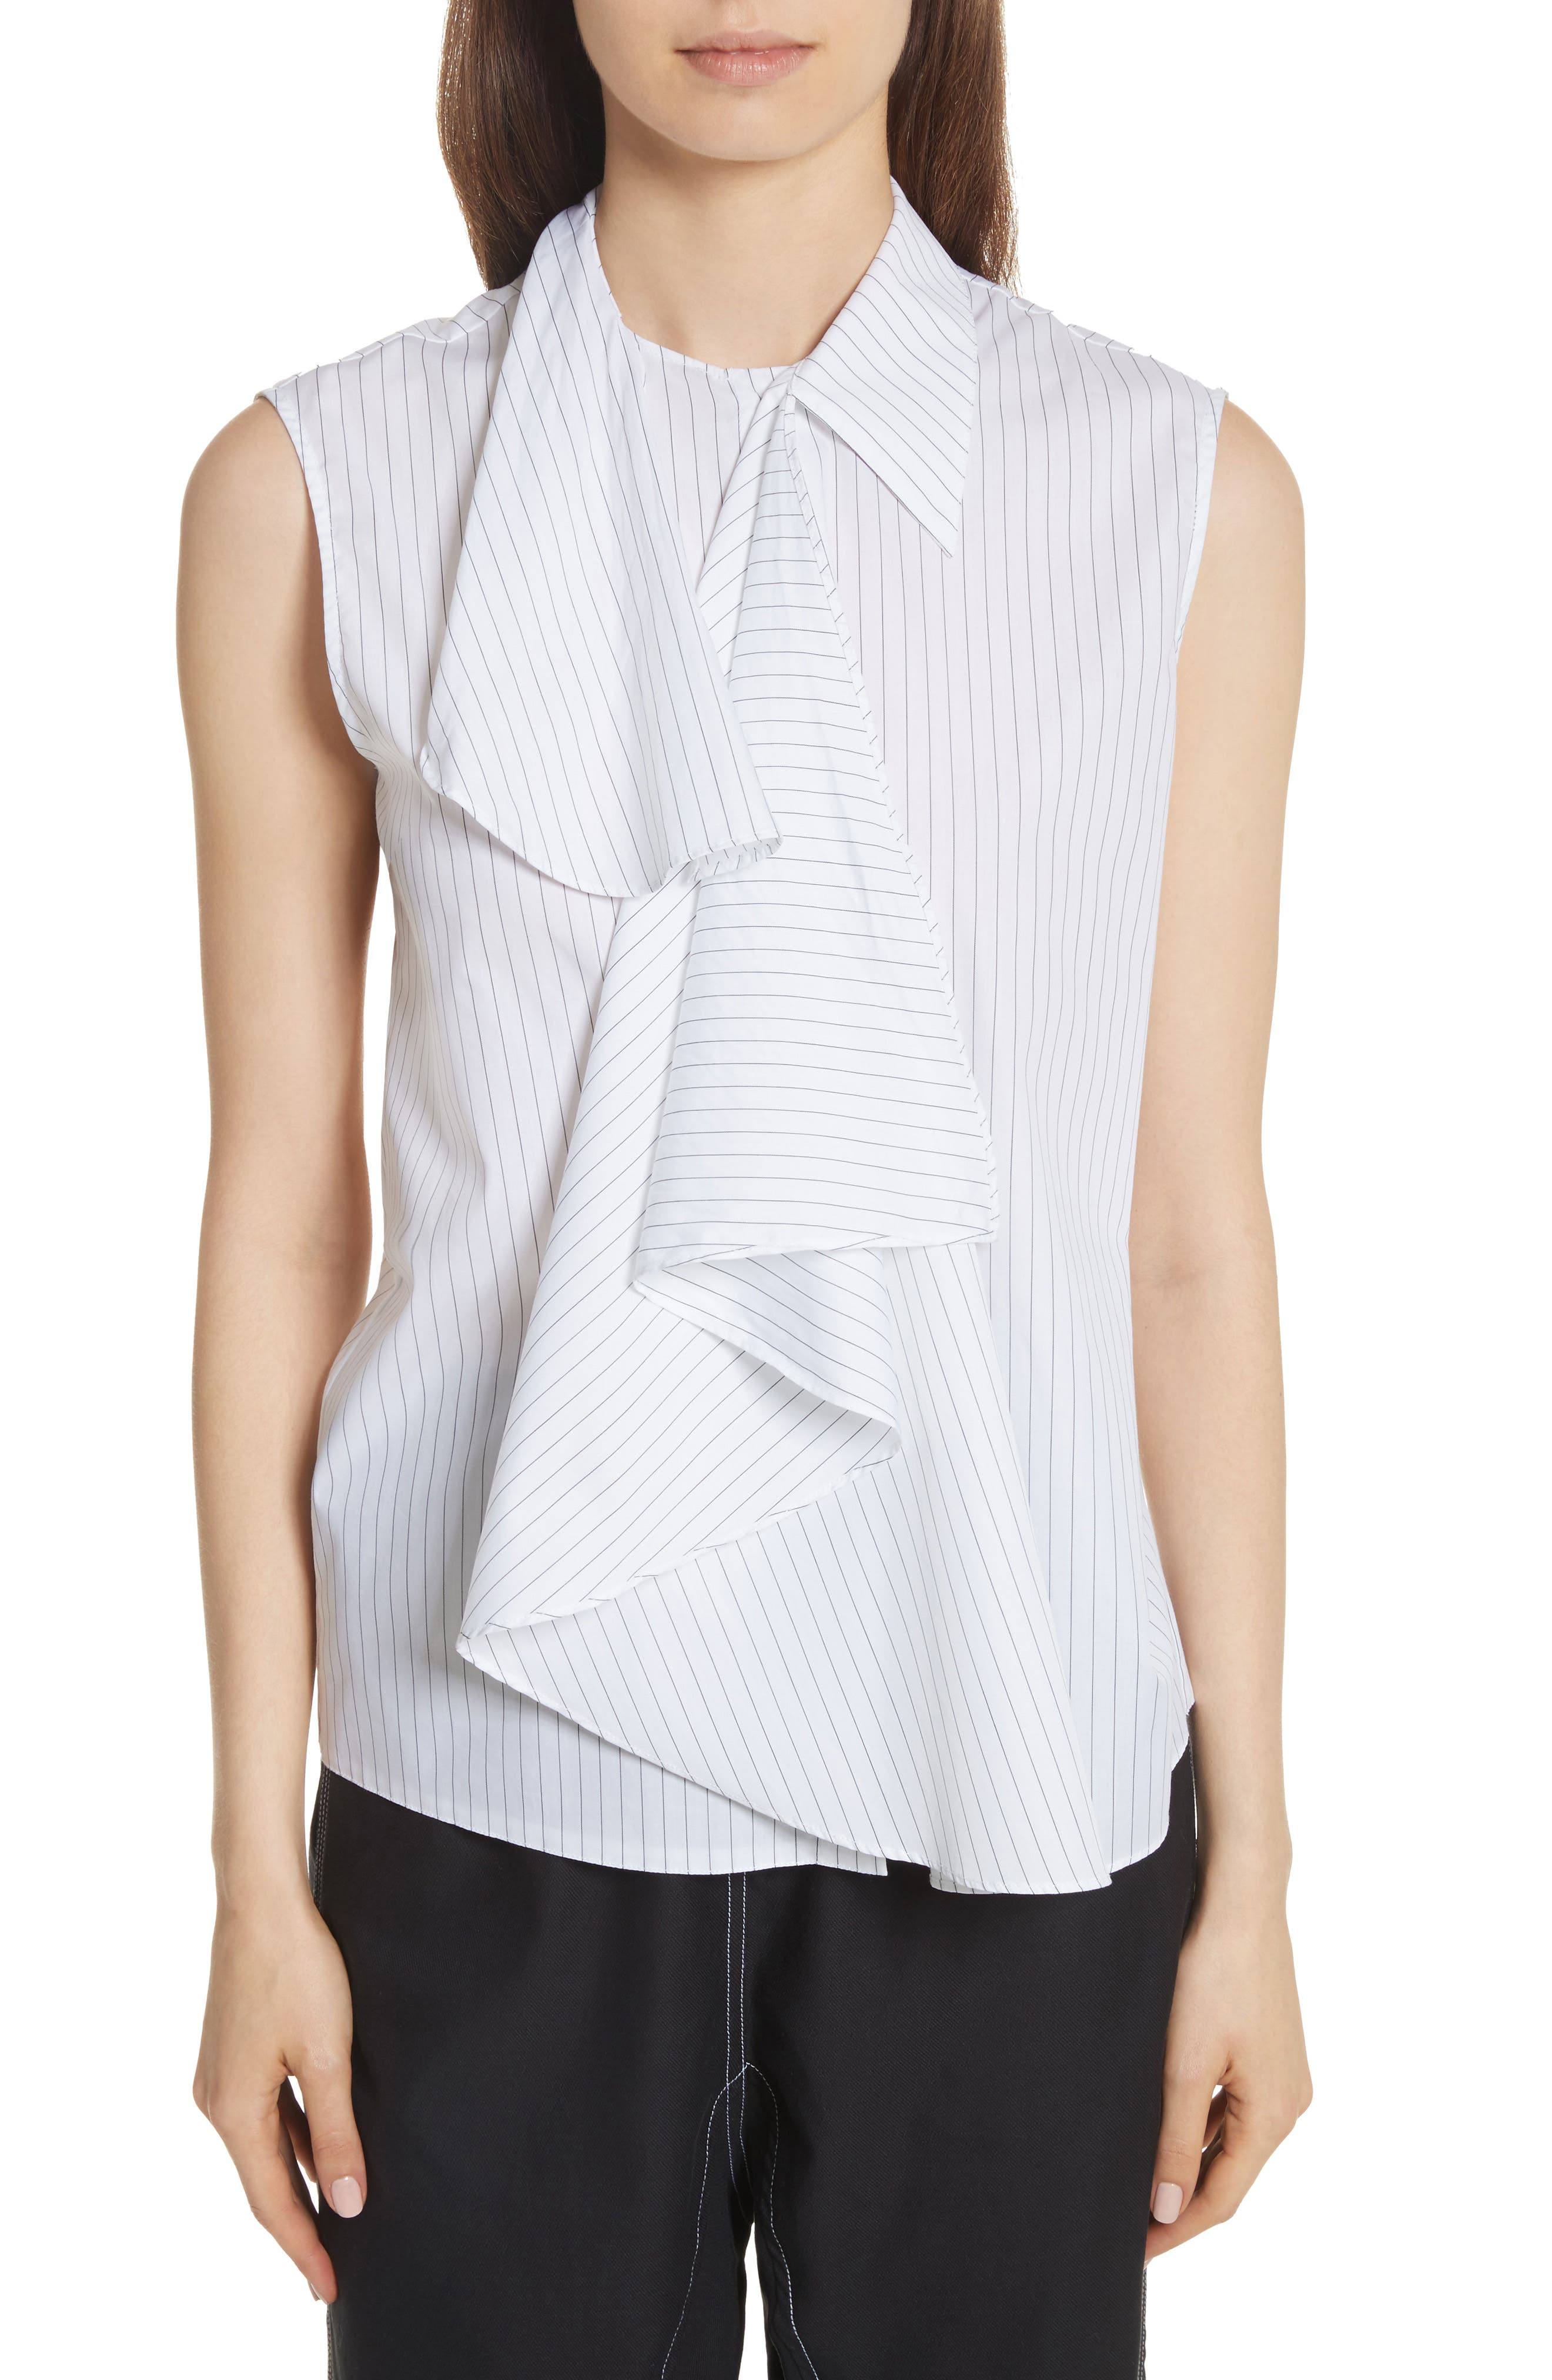 MM6 Maison Margiela Sleeveless Poplin Top